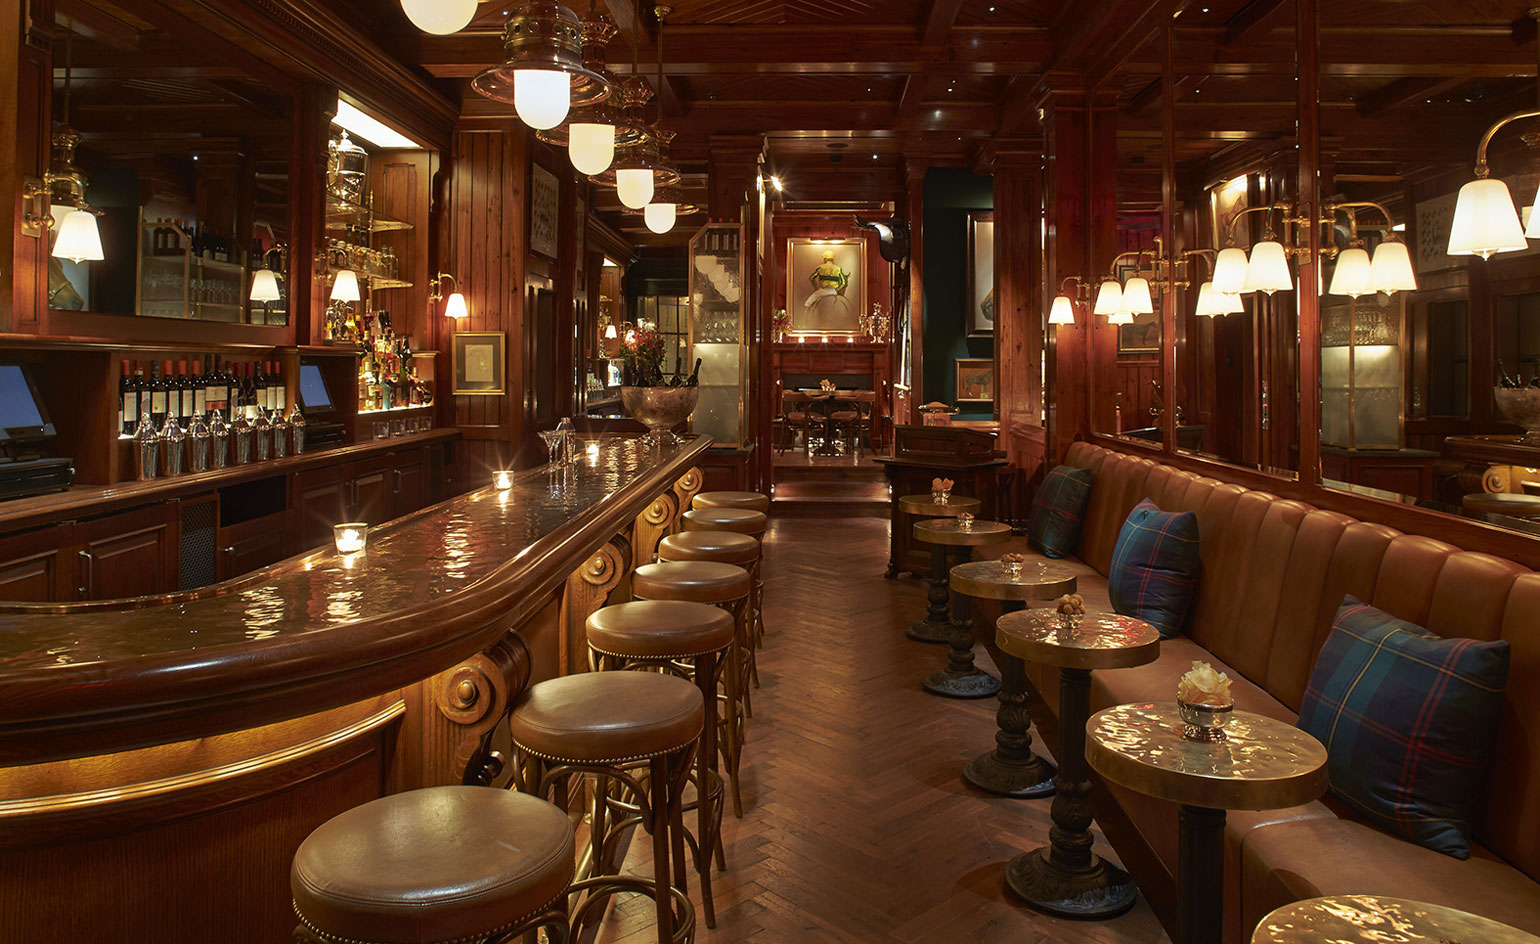 The polo bar restaurant review new york usa wallpaper for Lounge wallpaper